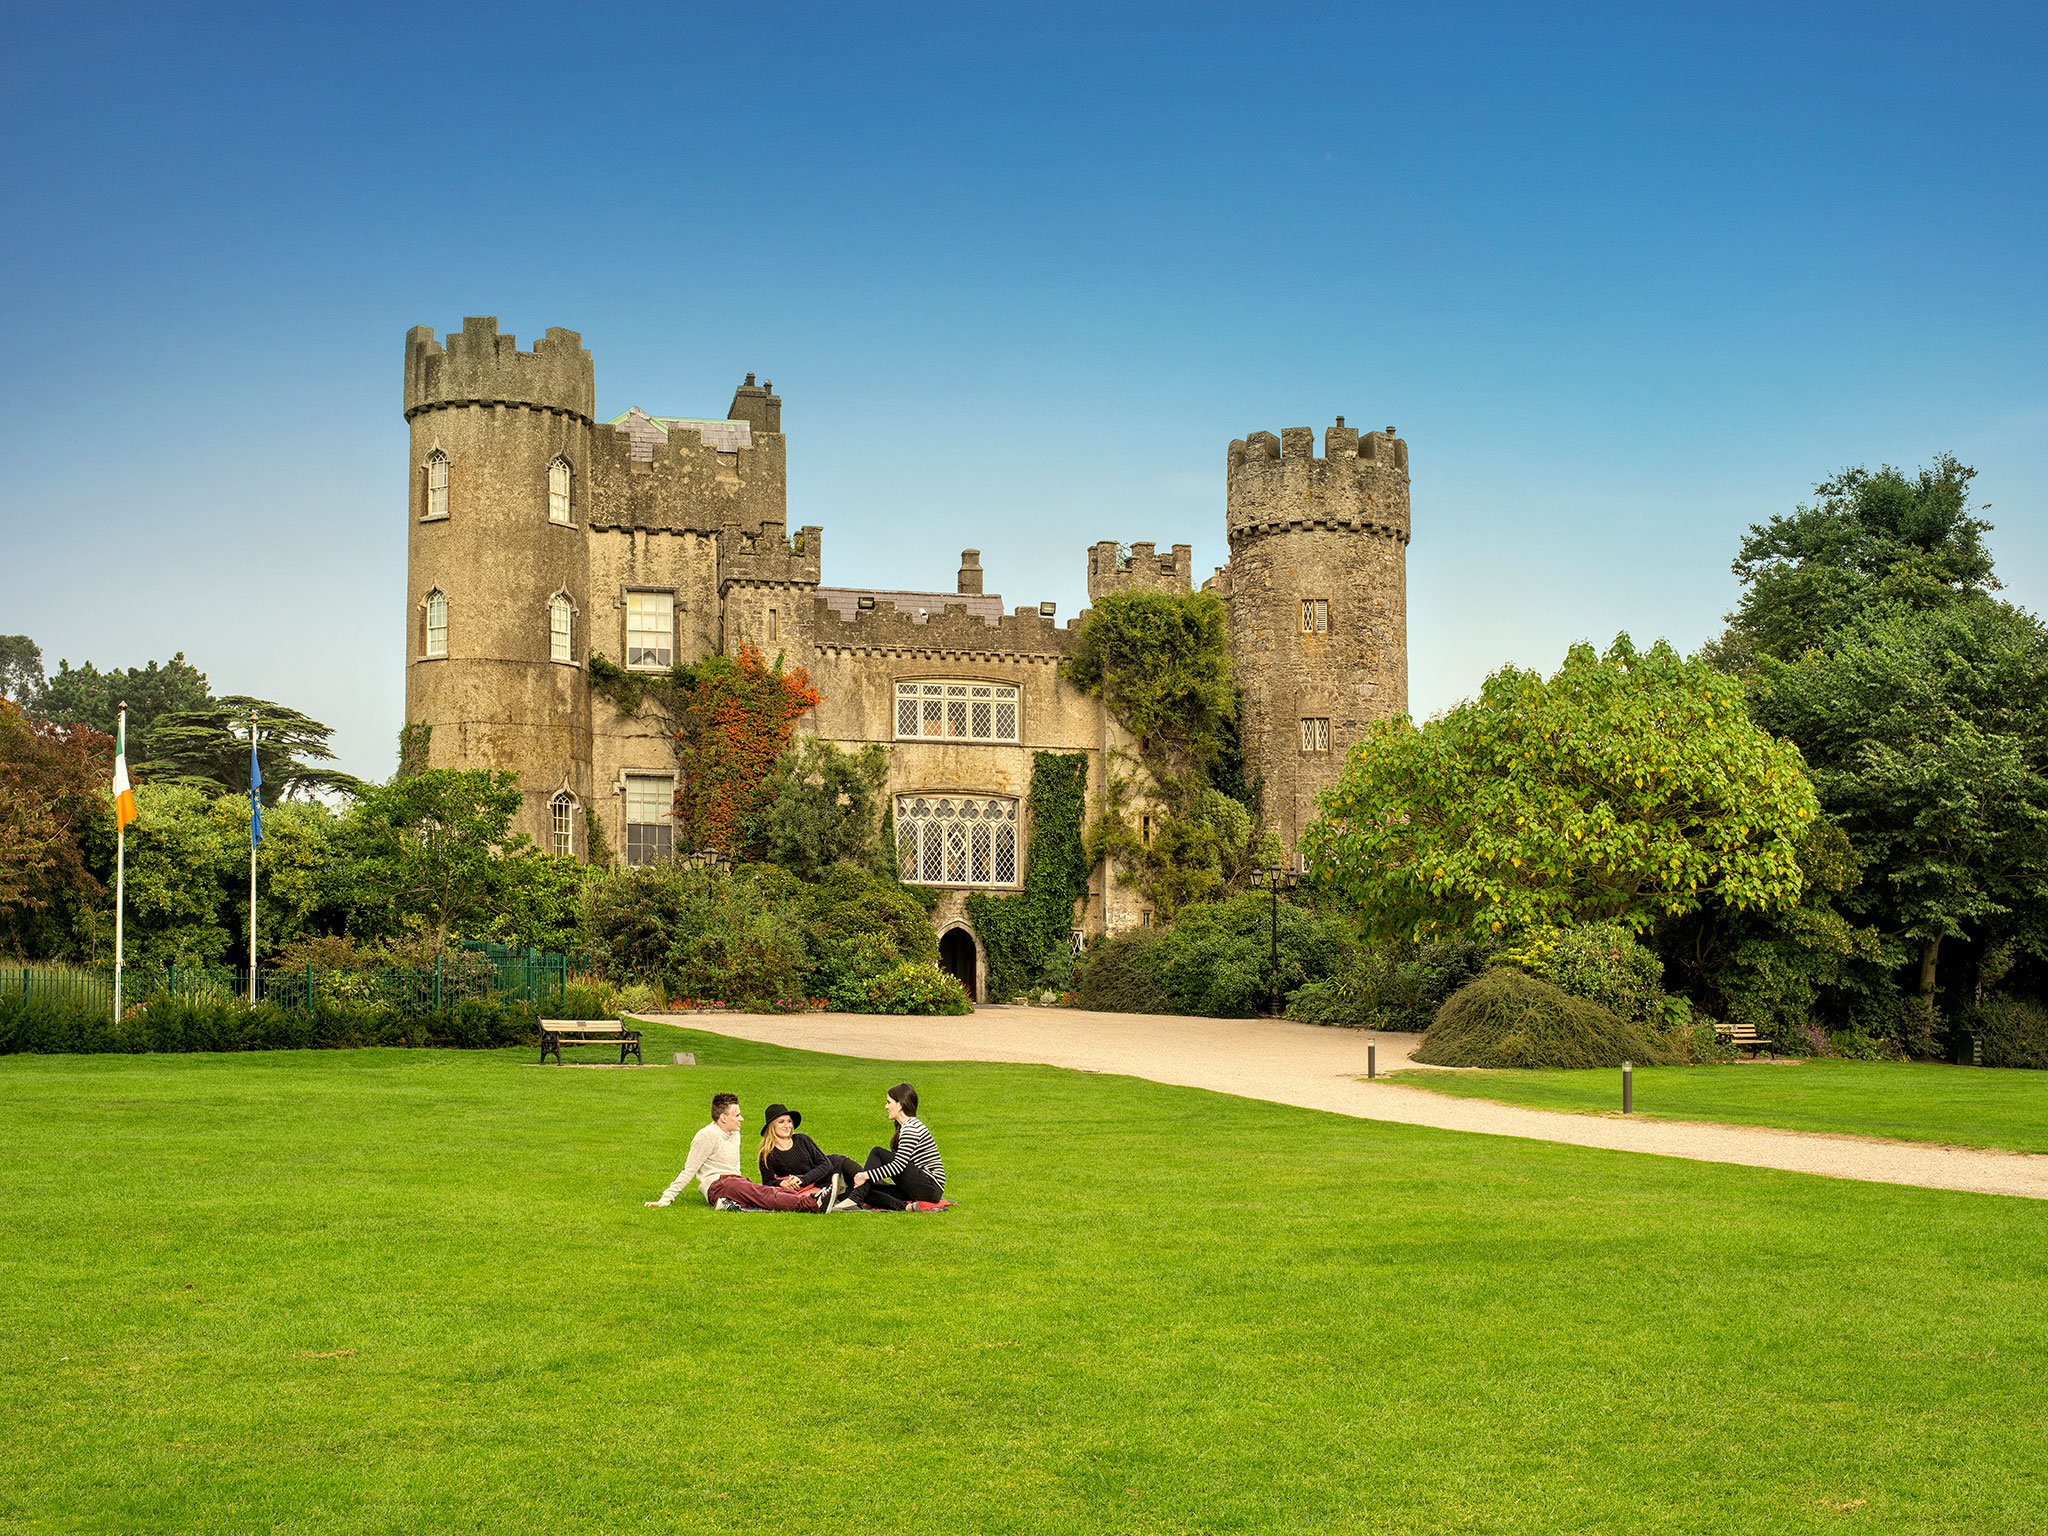 Historic Malahide Castle on sunny day, surrounded by open green spaces and trees.